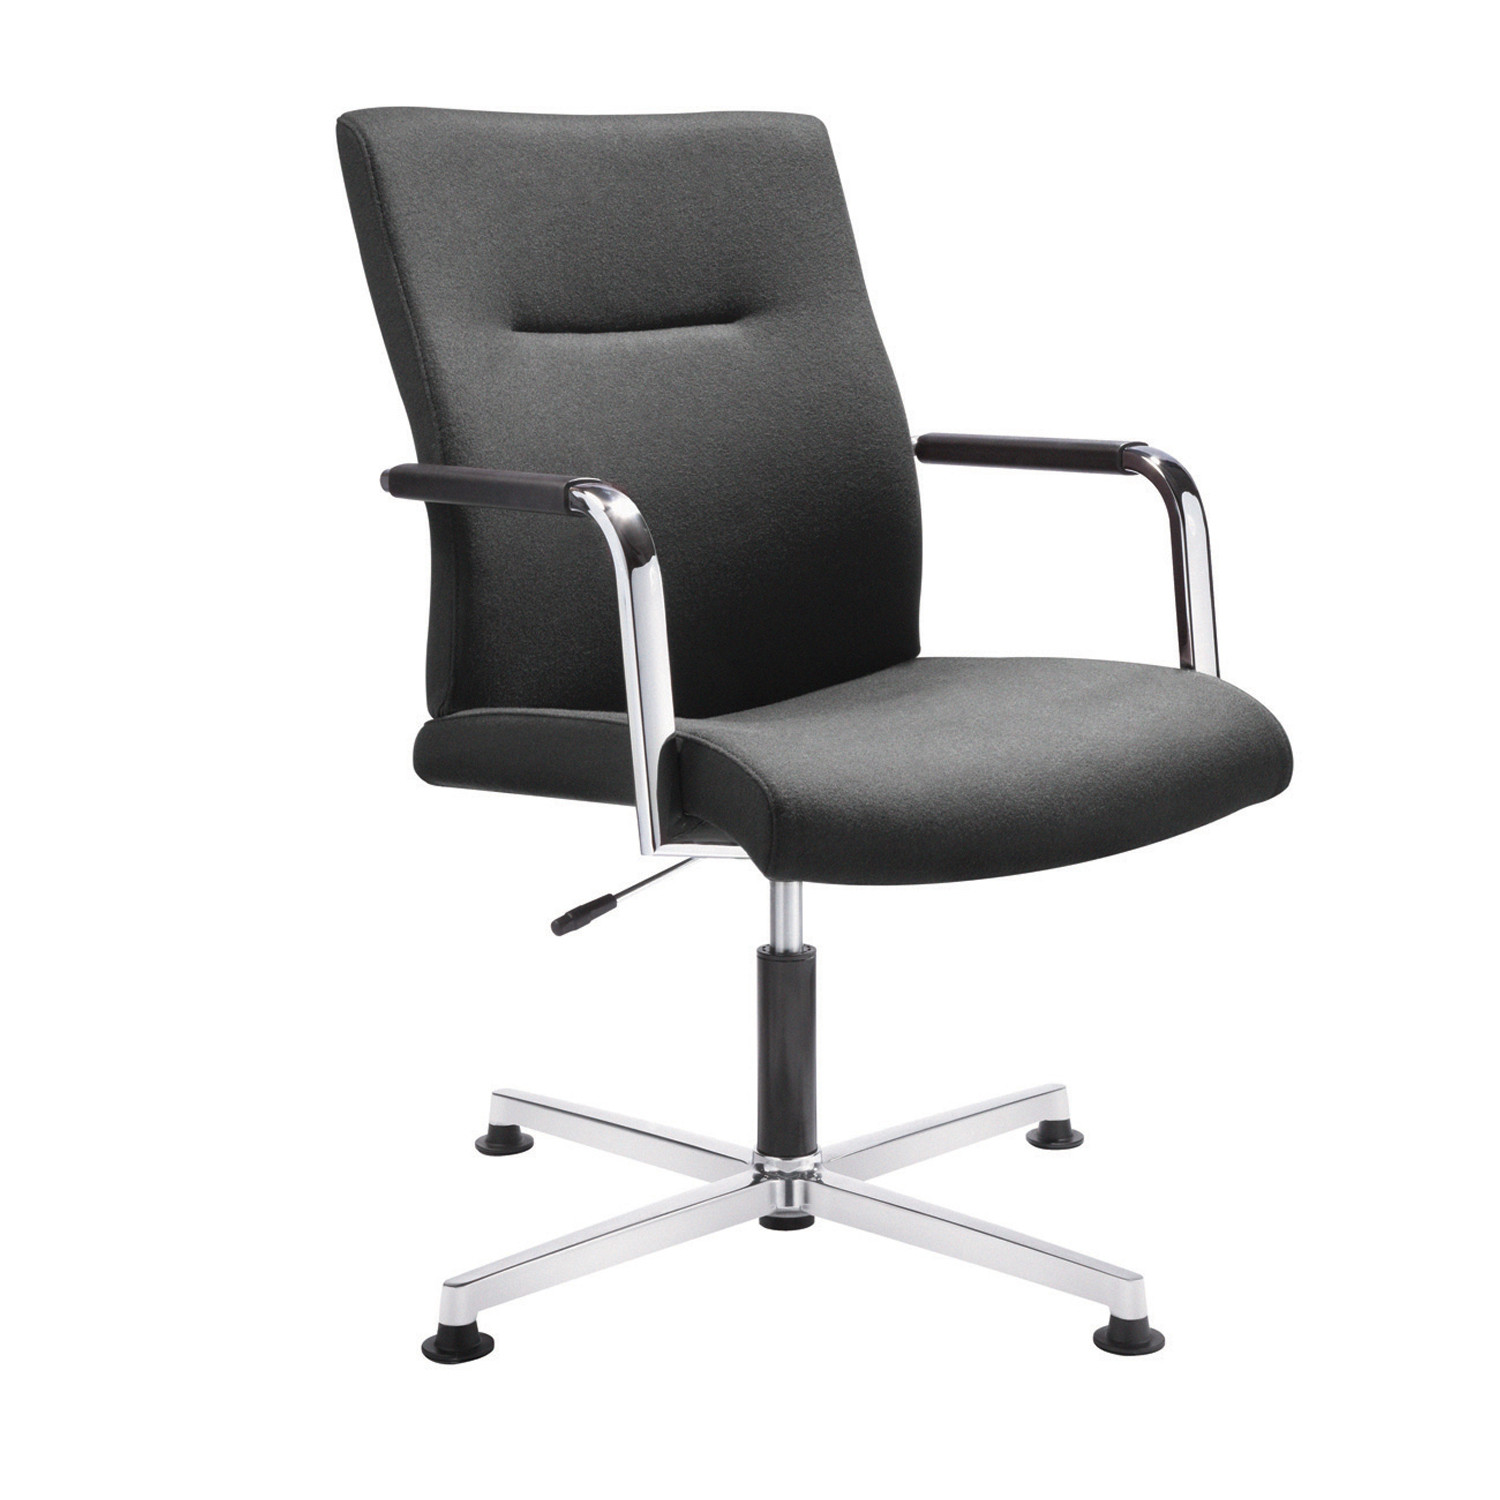 IS Executive 4 Star Base Chair